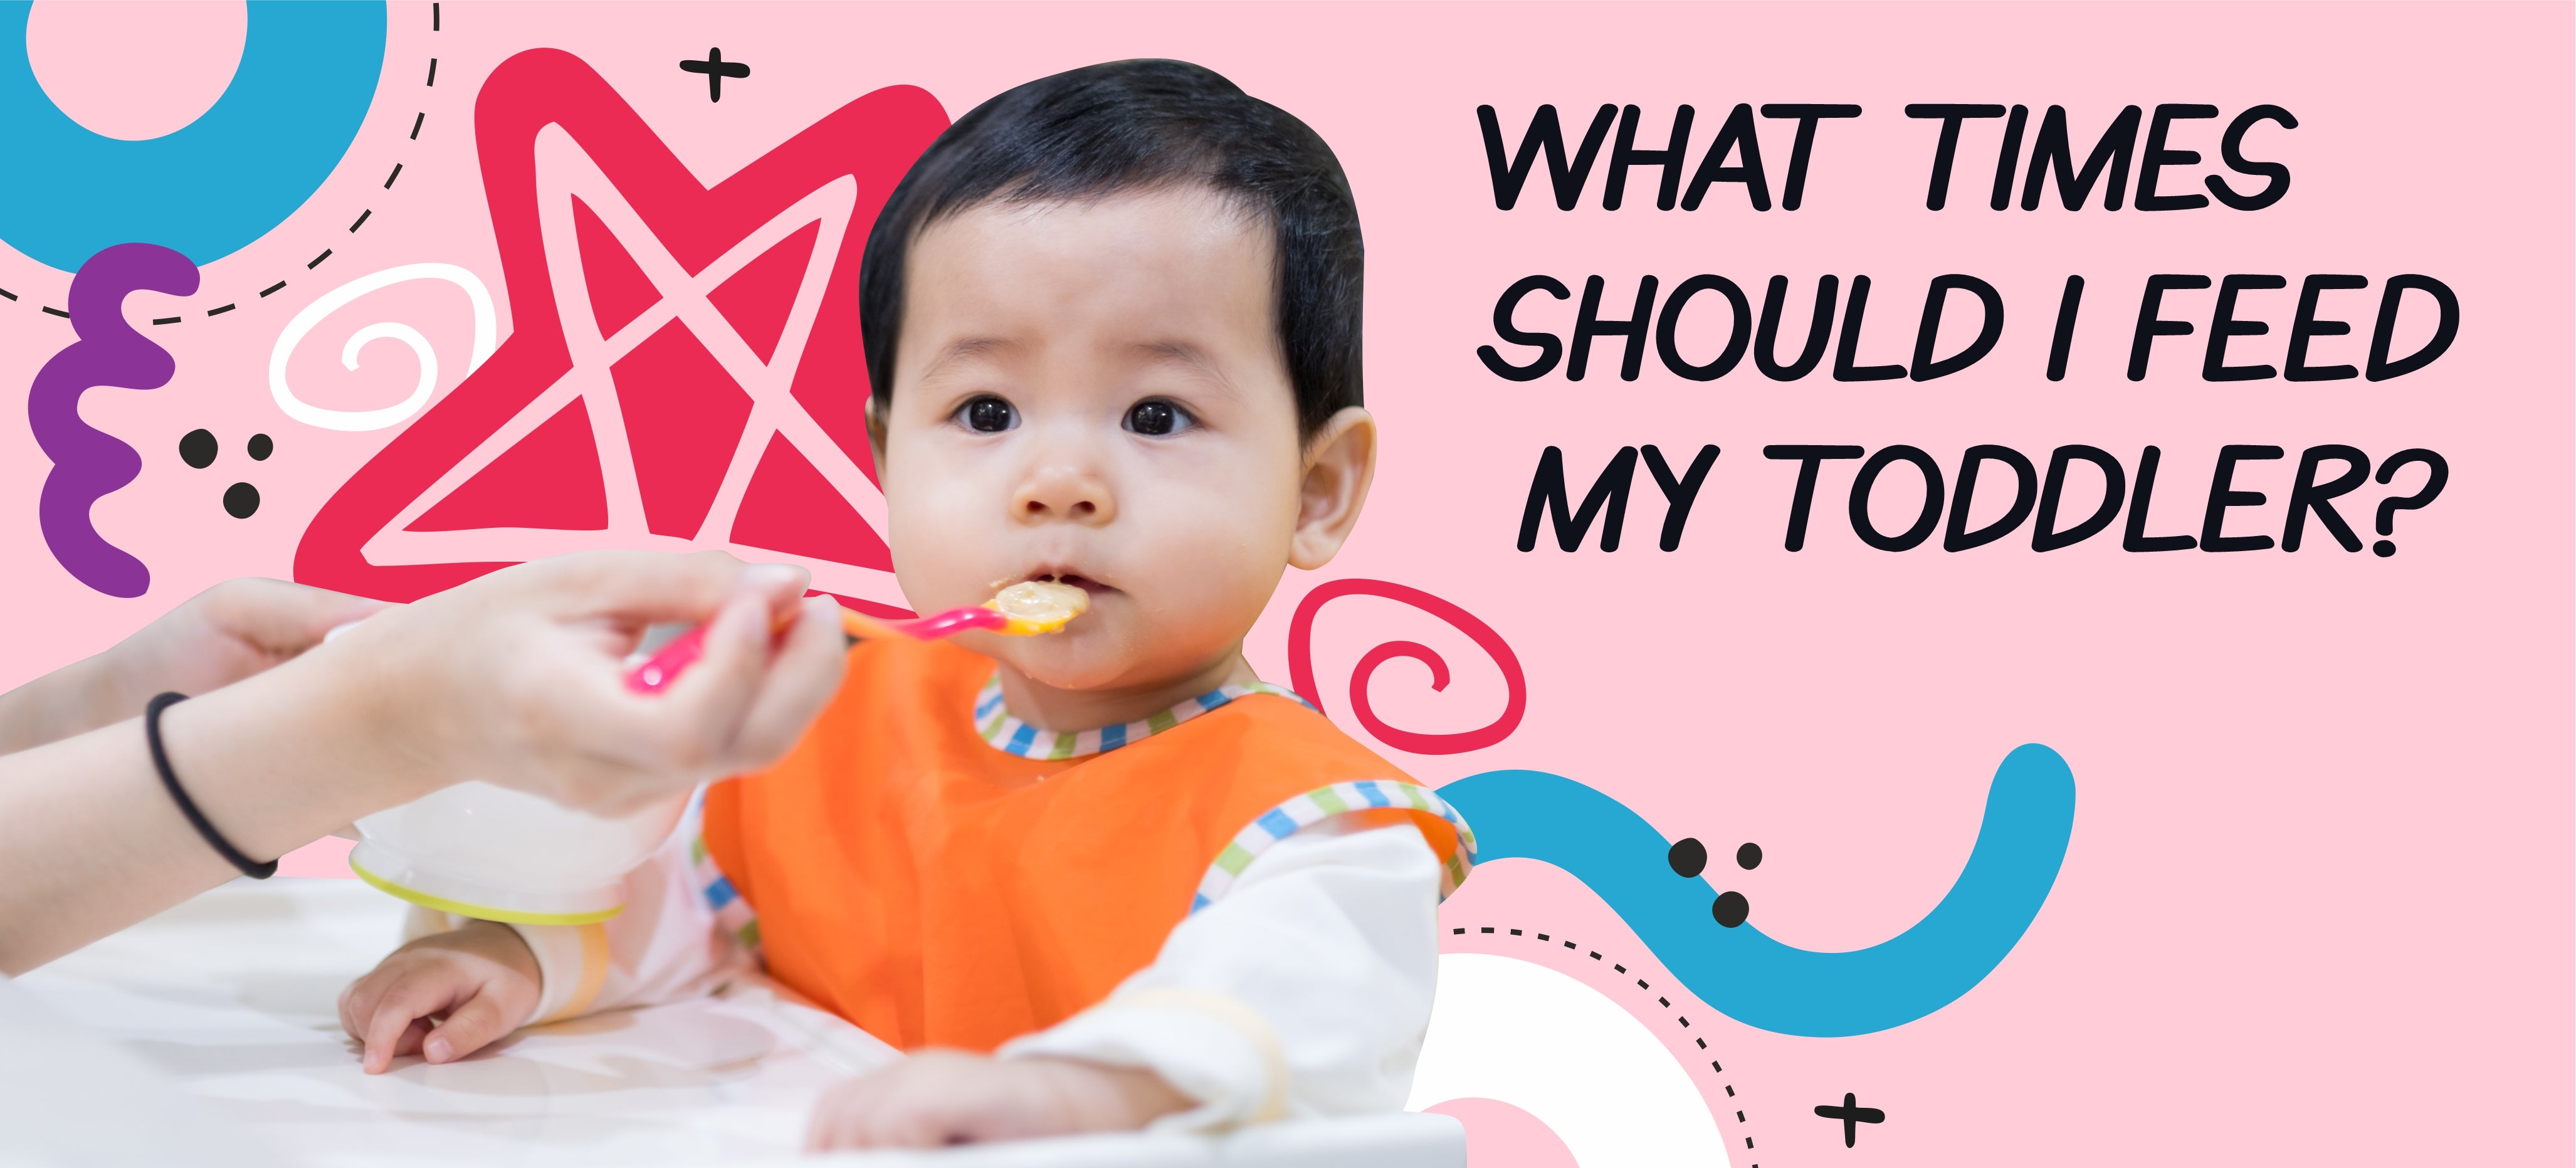 How Often and At What Times Should I Feed My Toddler?